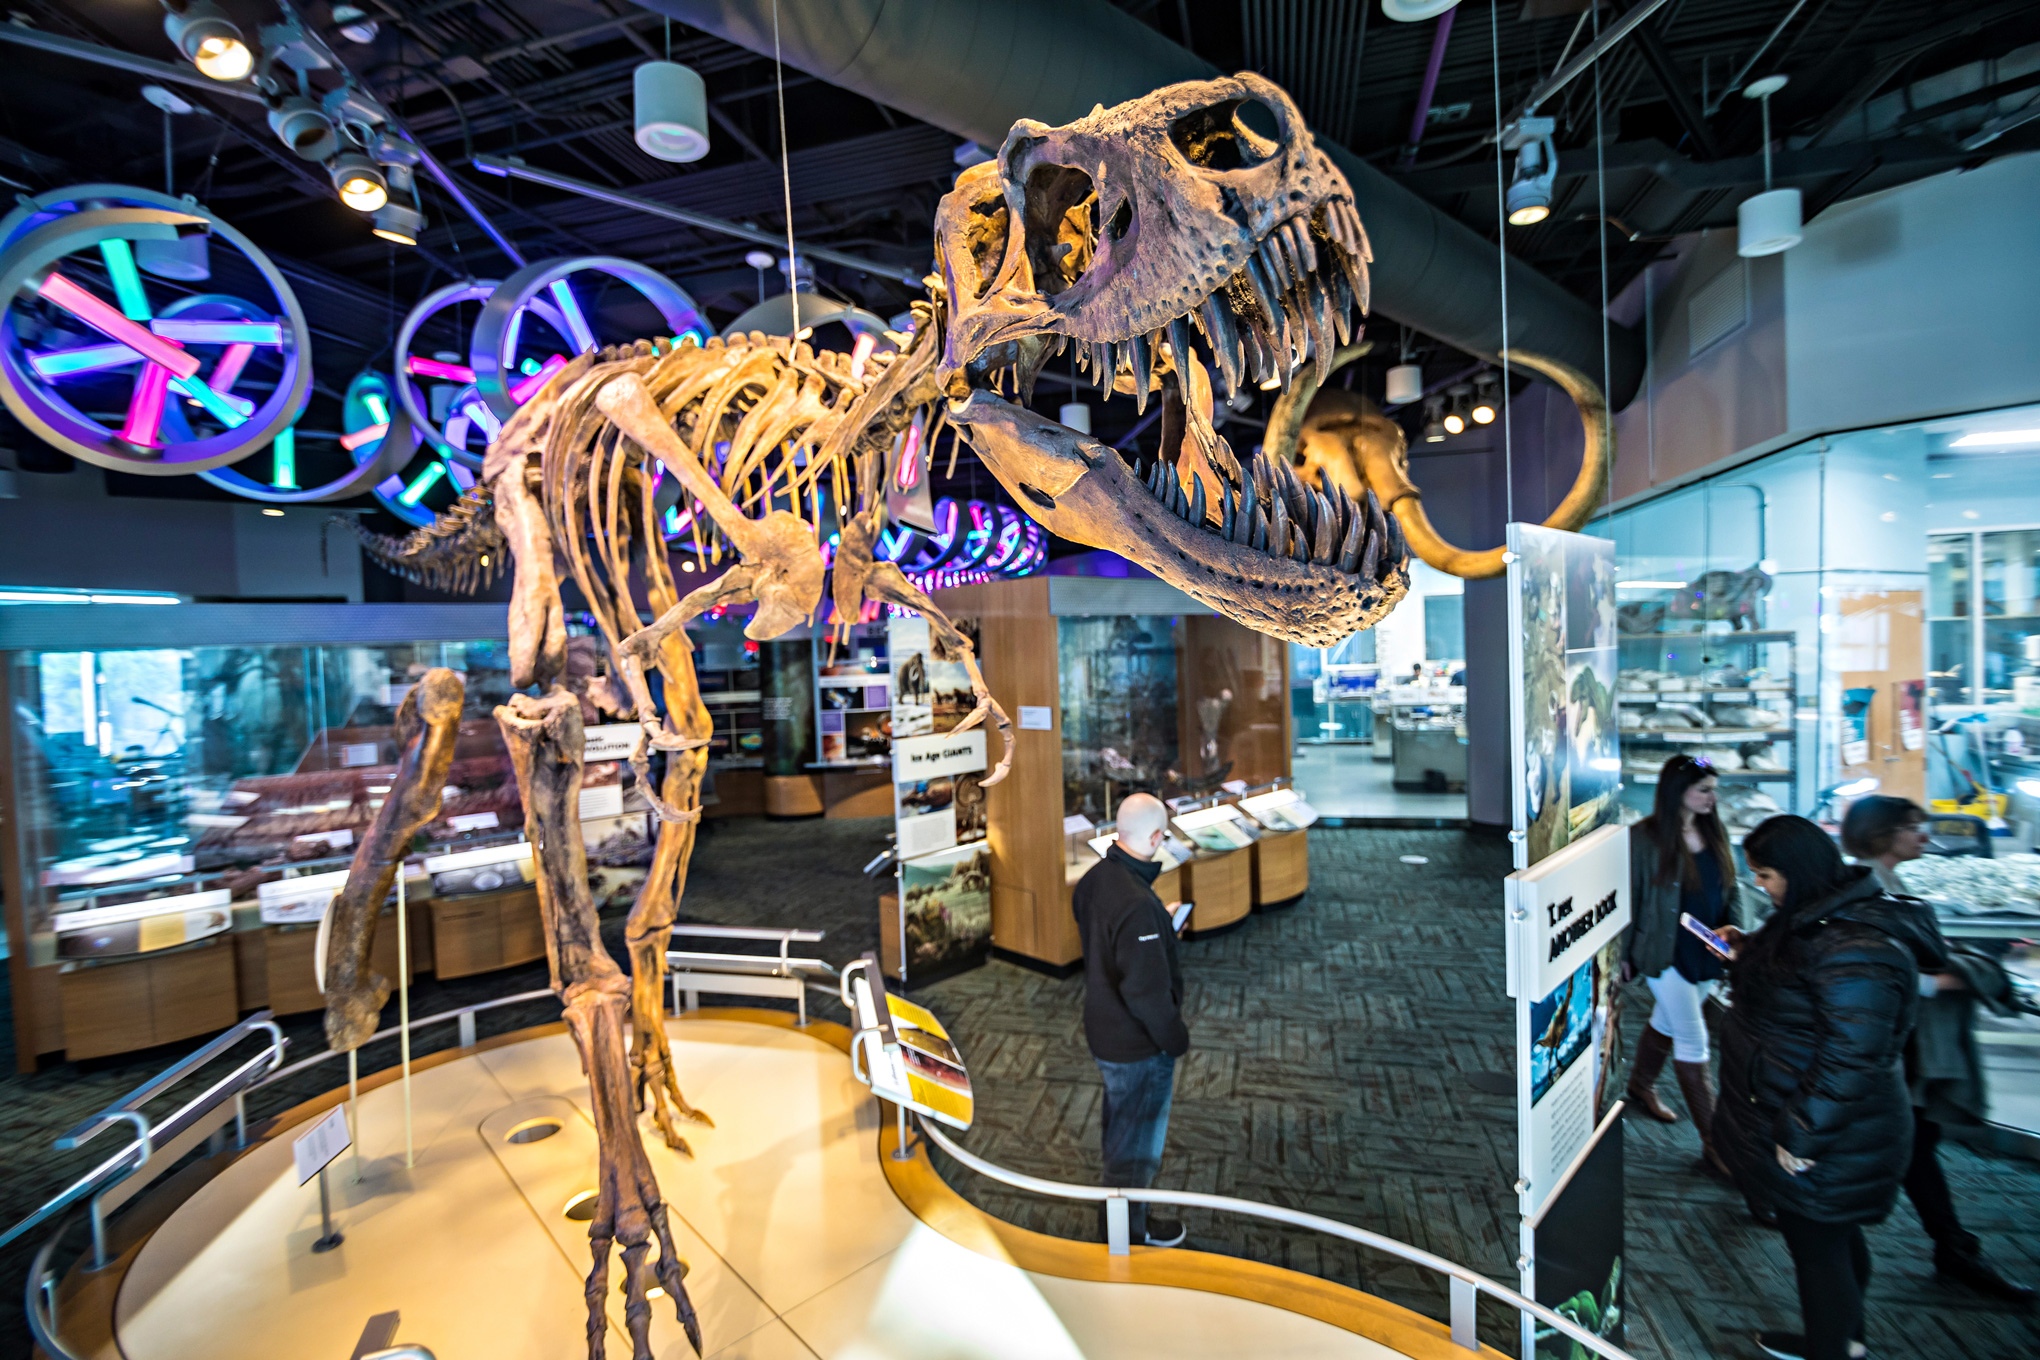 A T. rex fossil keeps watch at the North Carolina Museum of Natural Sciences.